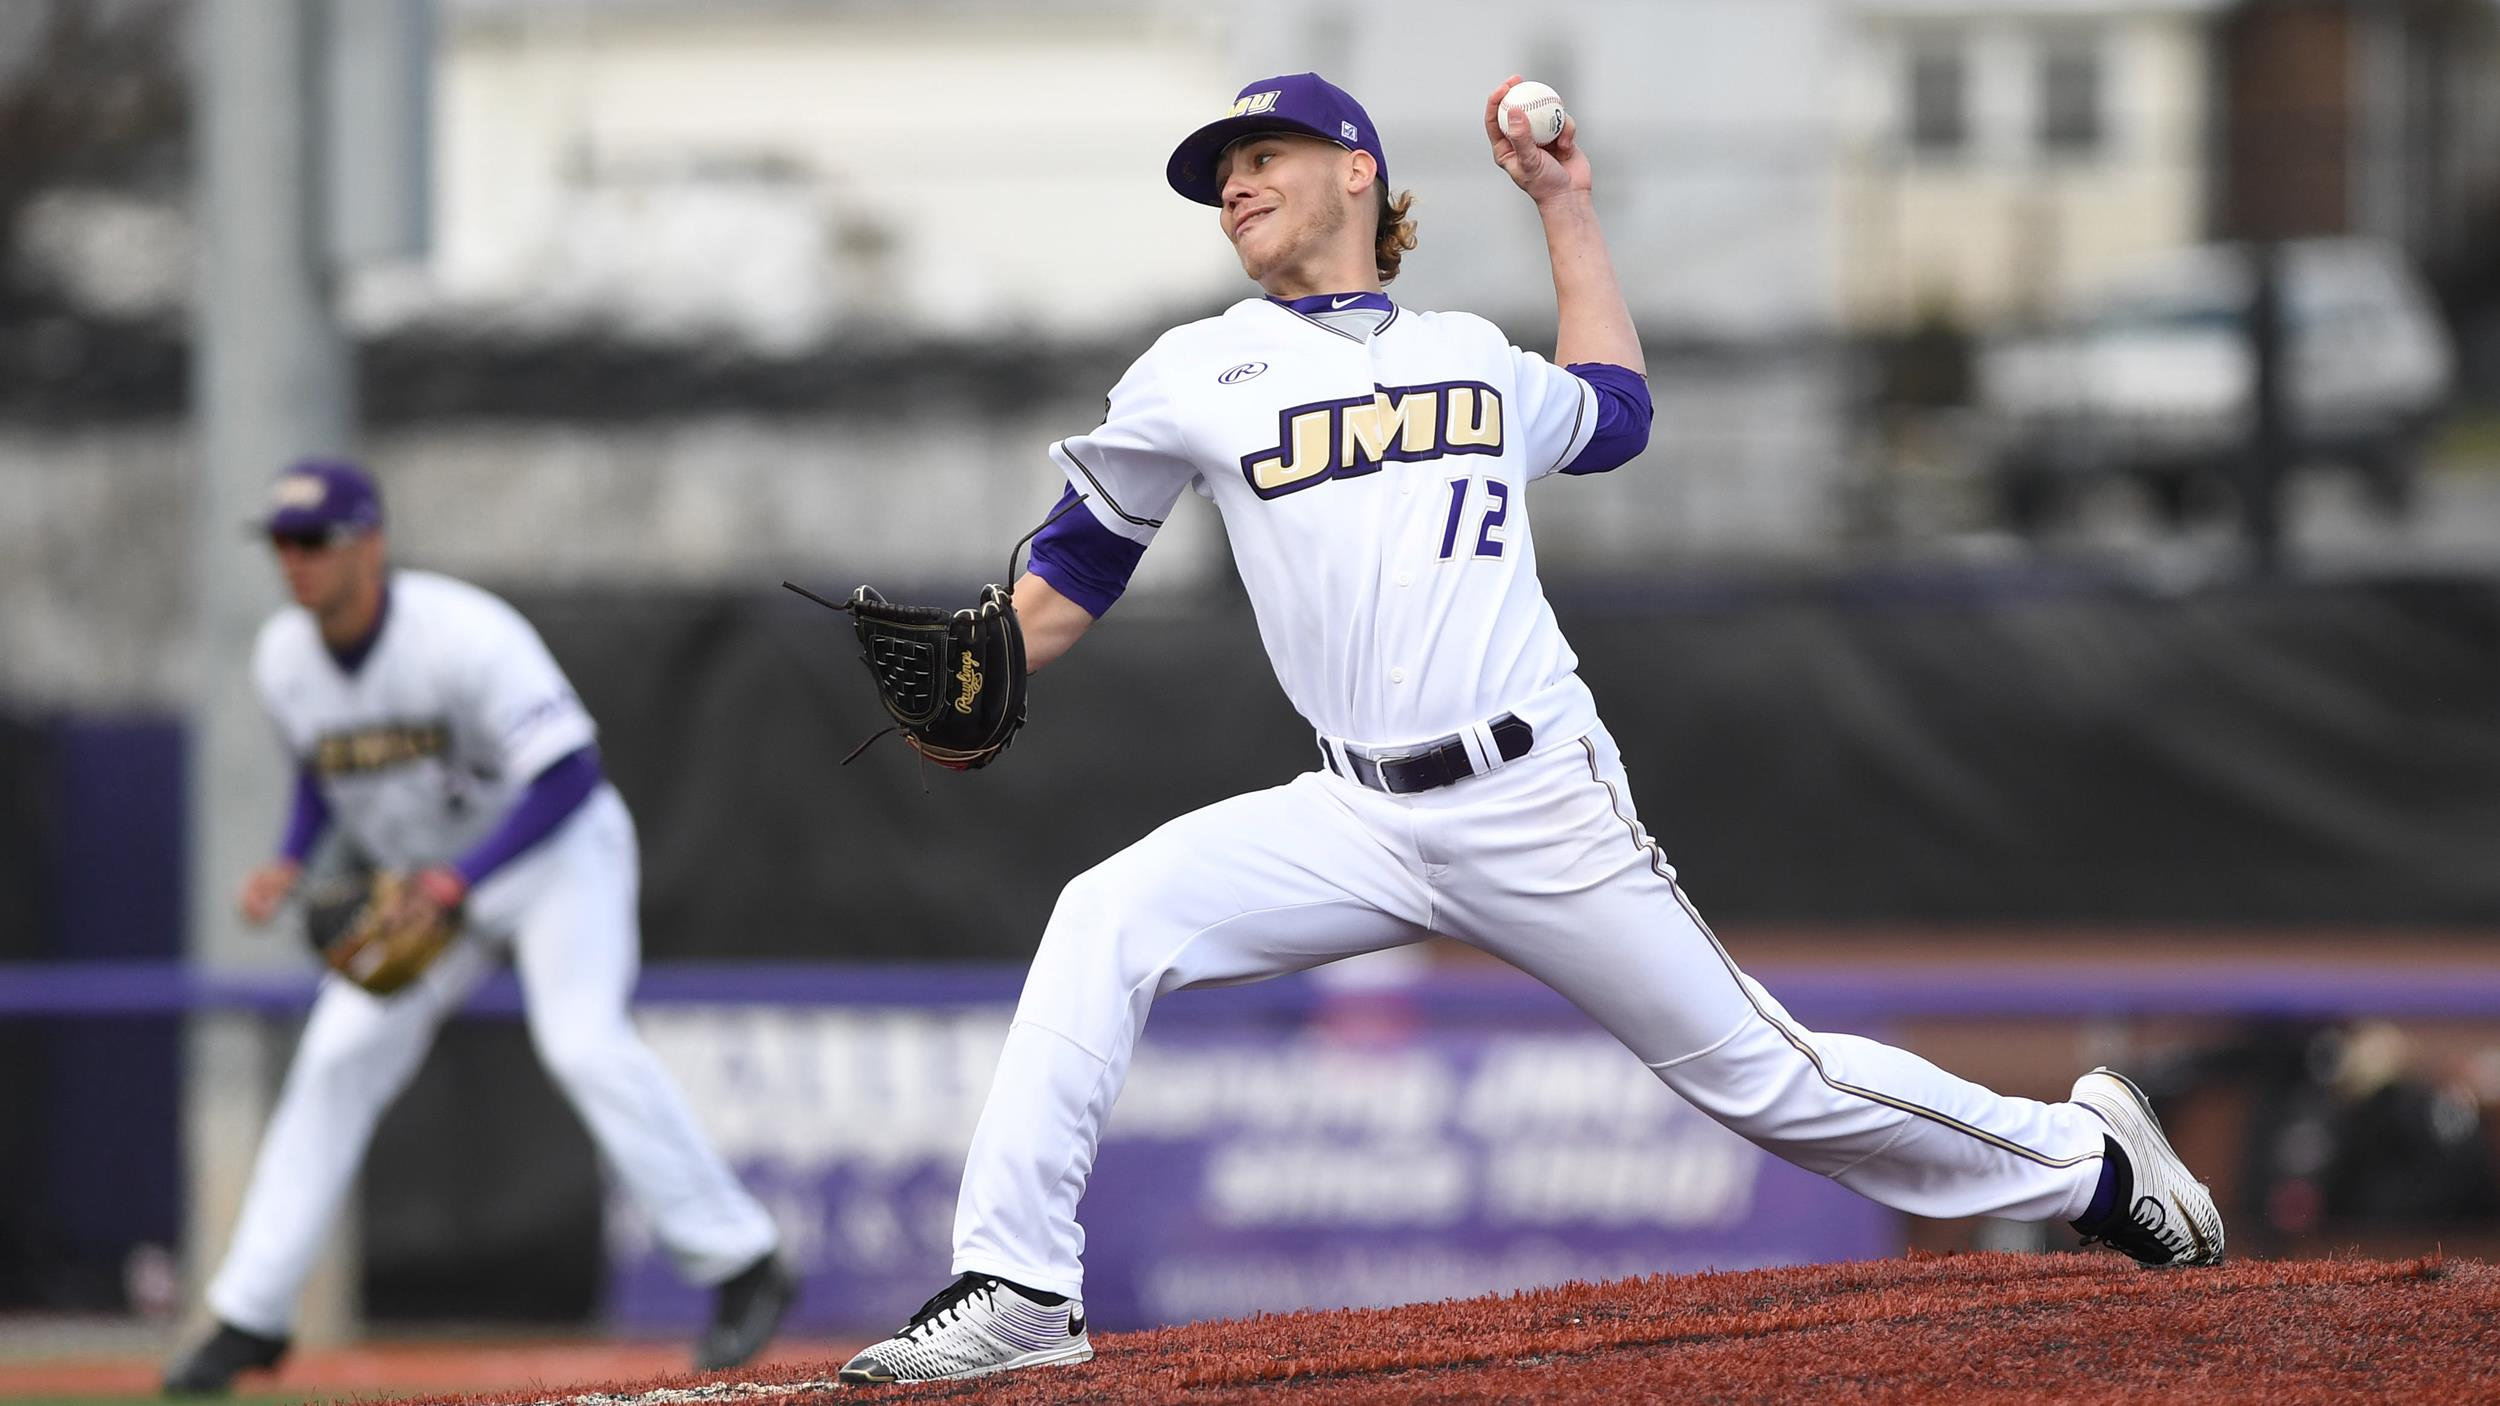 Baseball: Harlow, Dukes Cruise Past Towson, 12-3